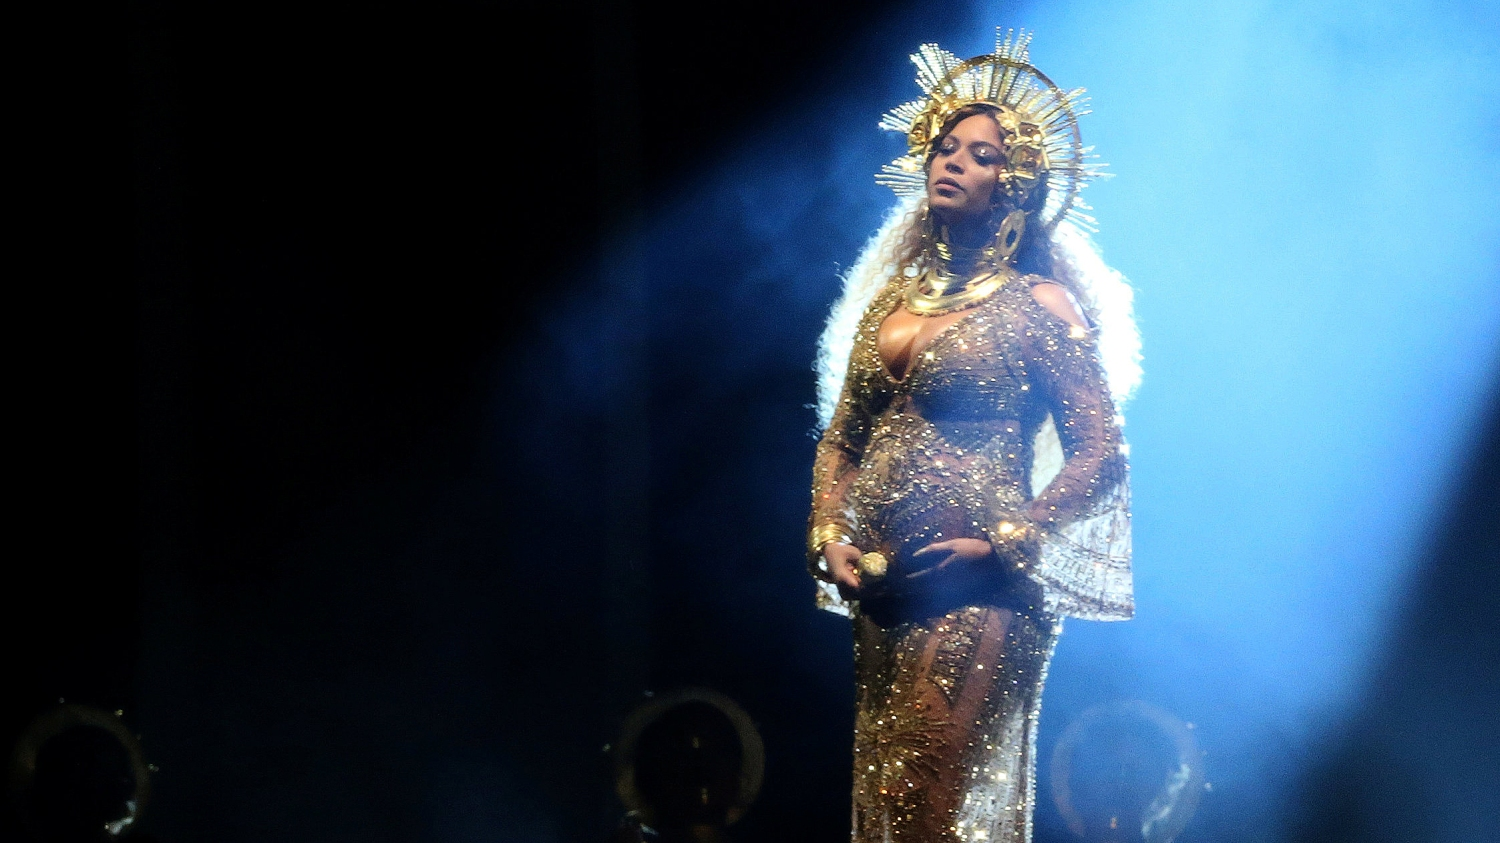 FILE PHOTO – Beyonce performs at the 59th Annual Grammy Awards in Los Angeles